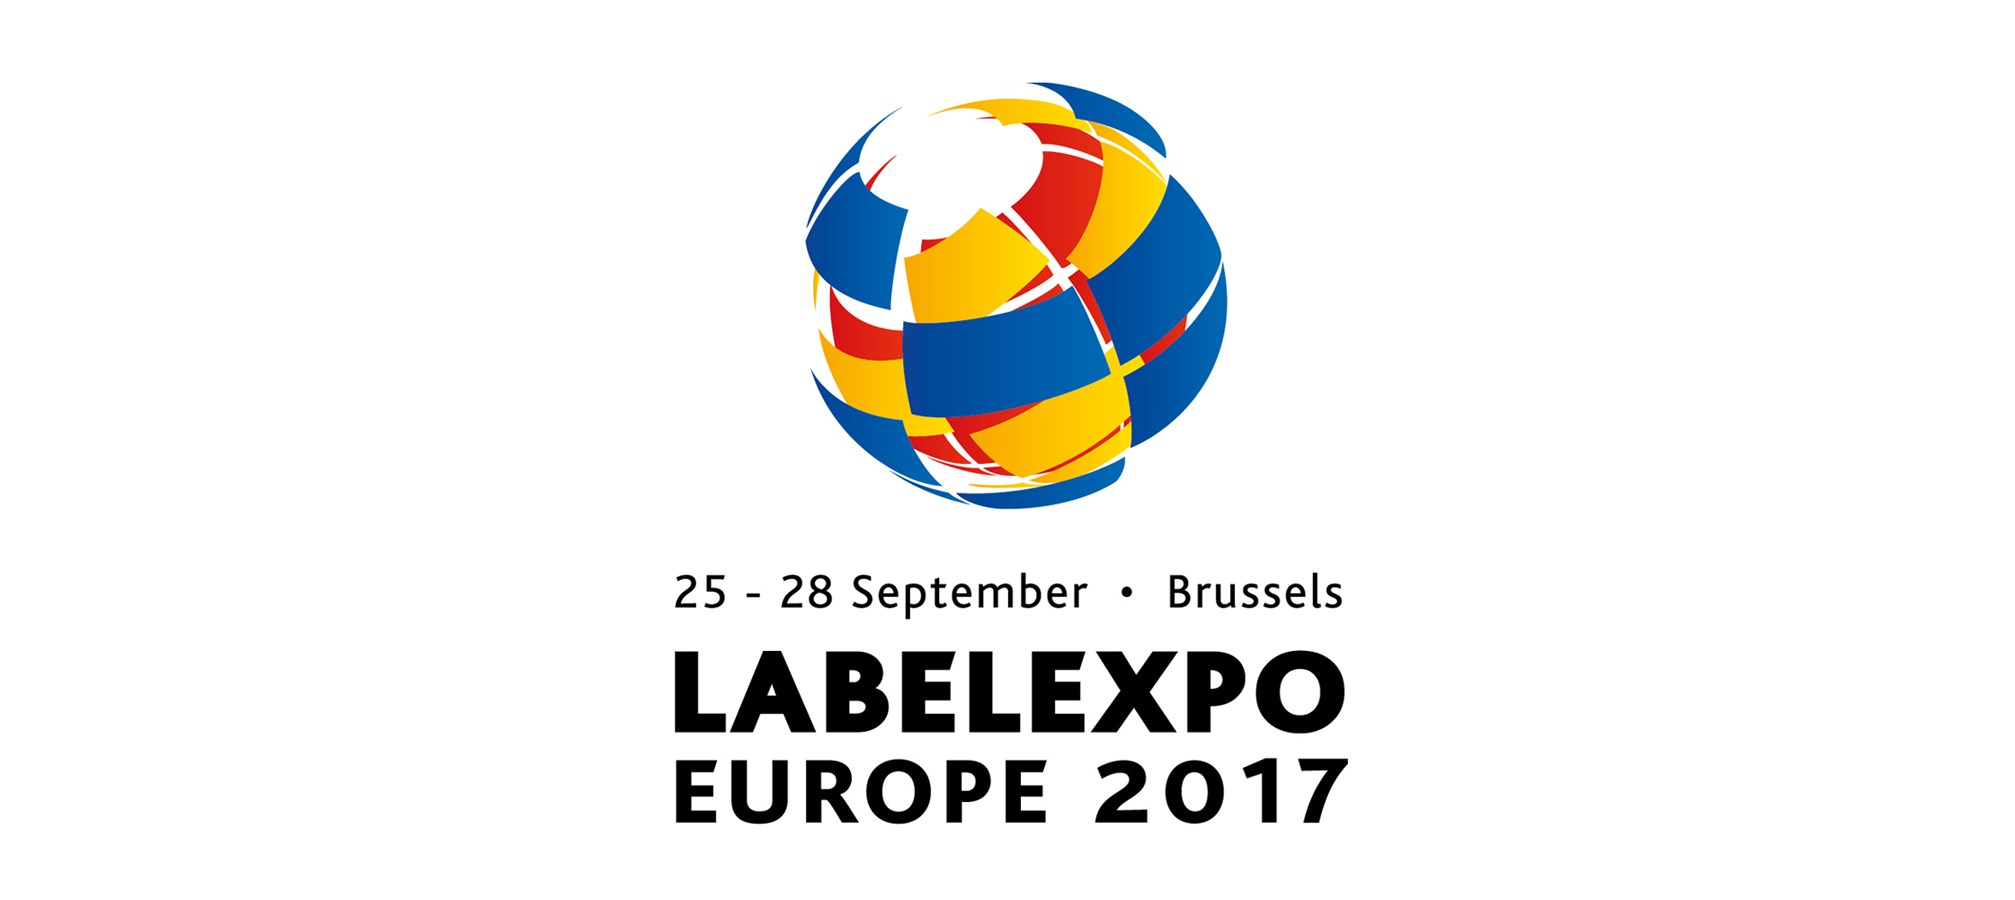 Labelexpo 2017 - Samorani Group Forlì